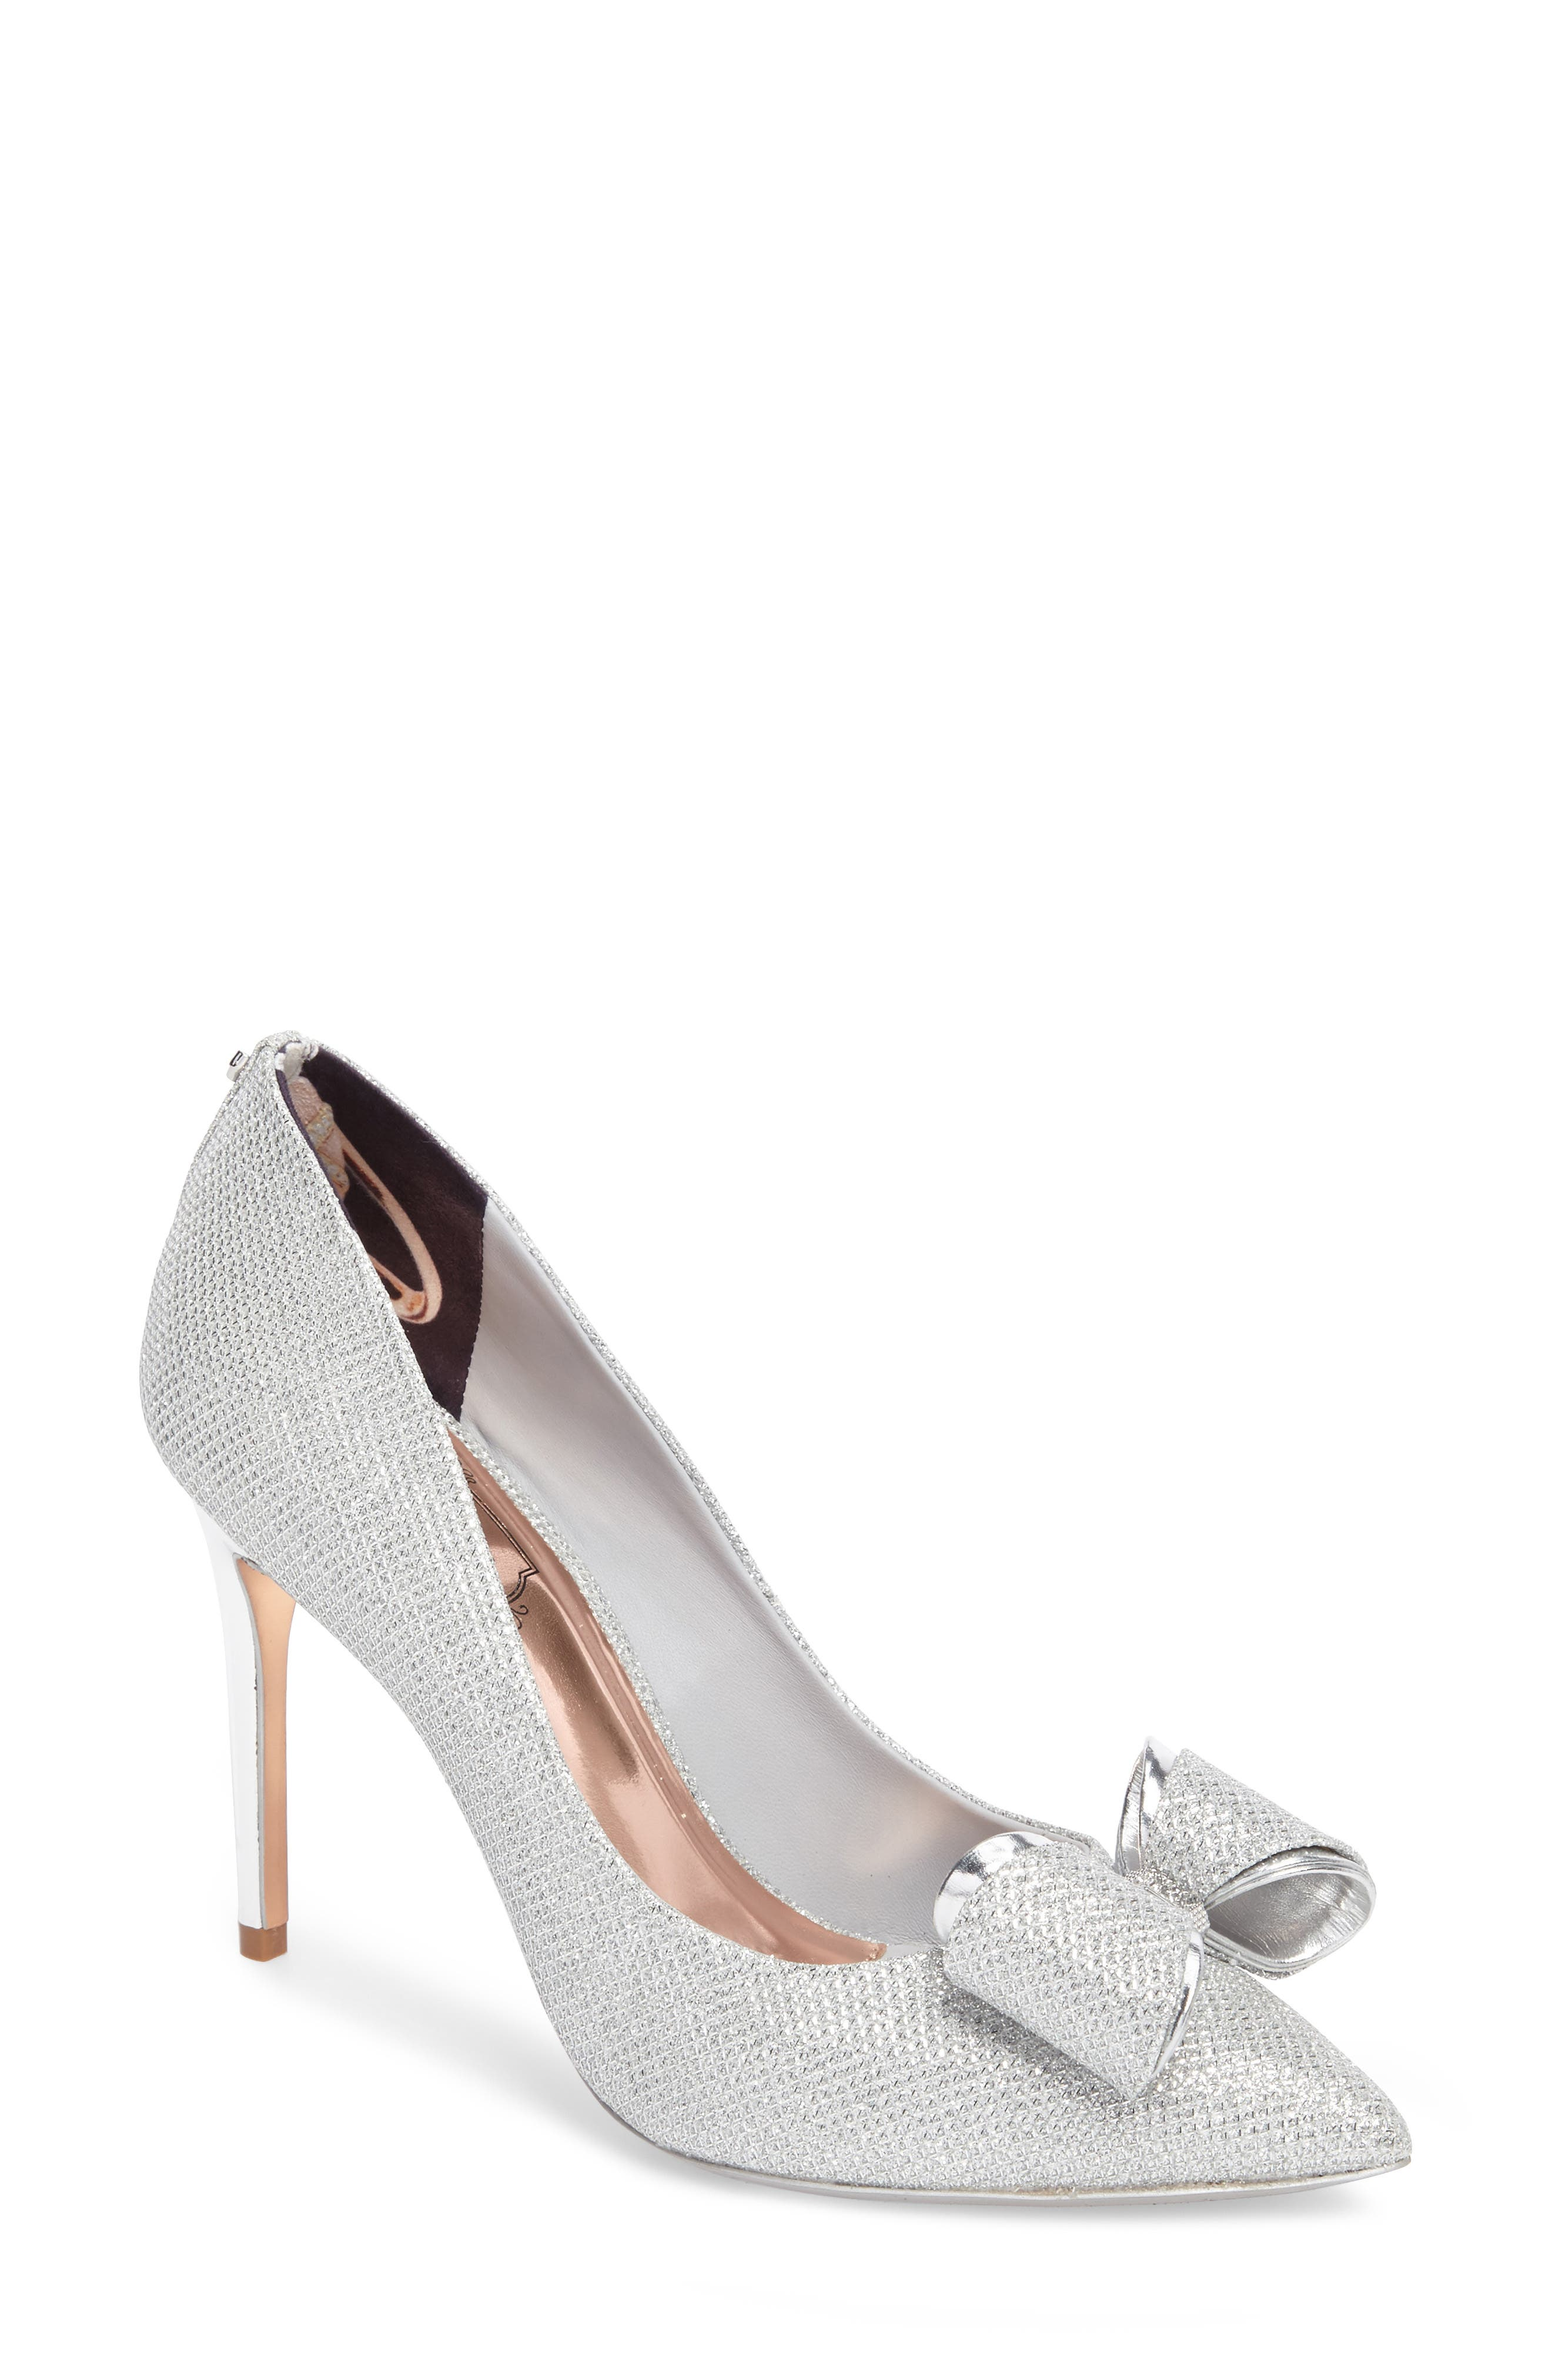 Alternate Image 1 Selected - Ted Baker London Azeline Bow Pump (Women)